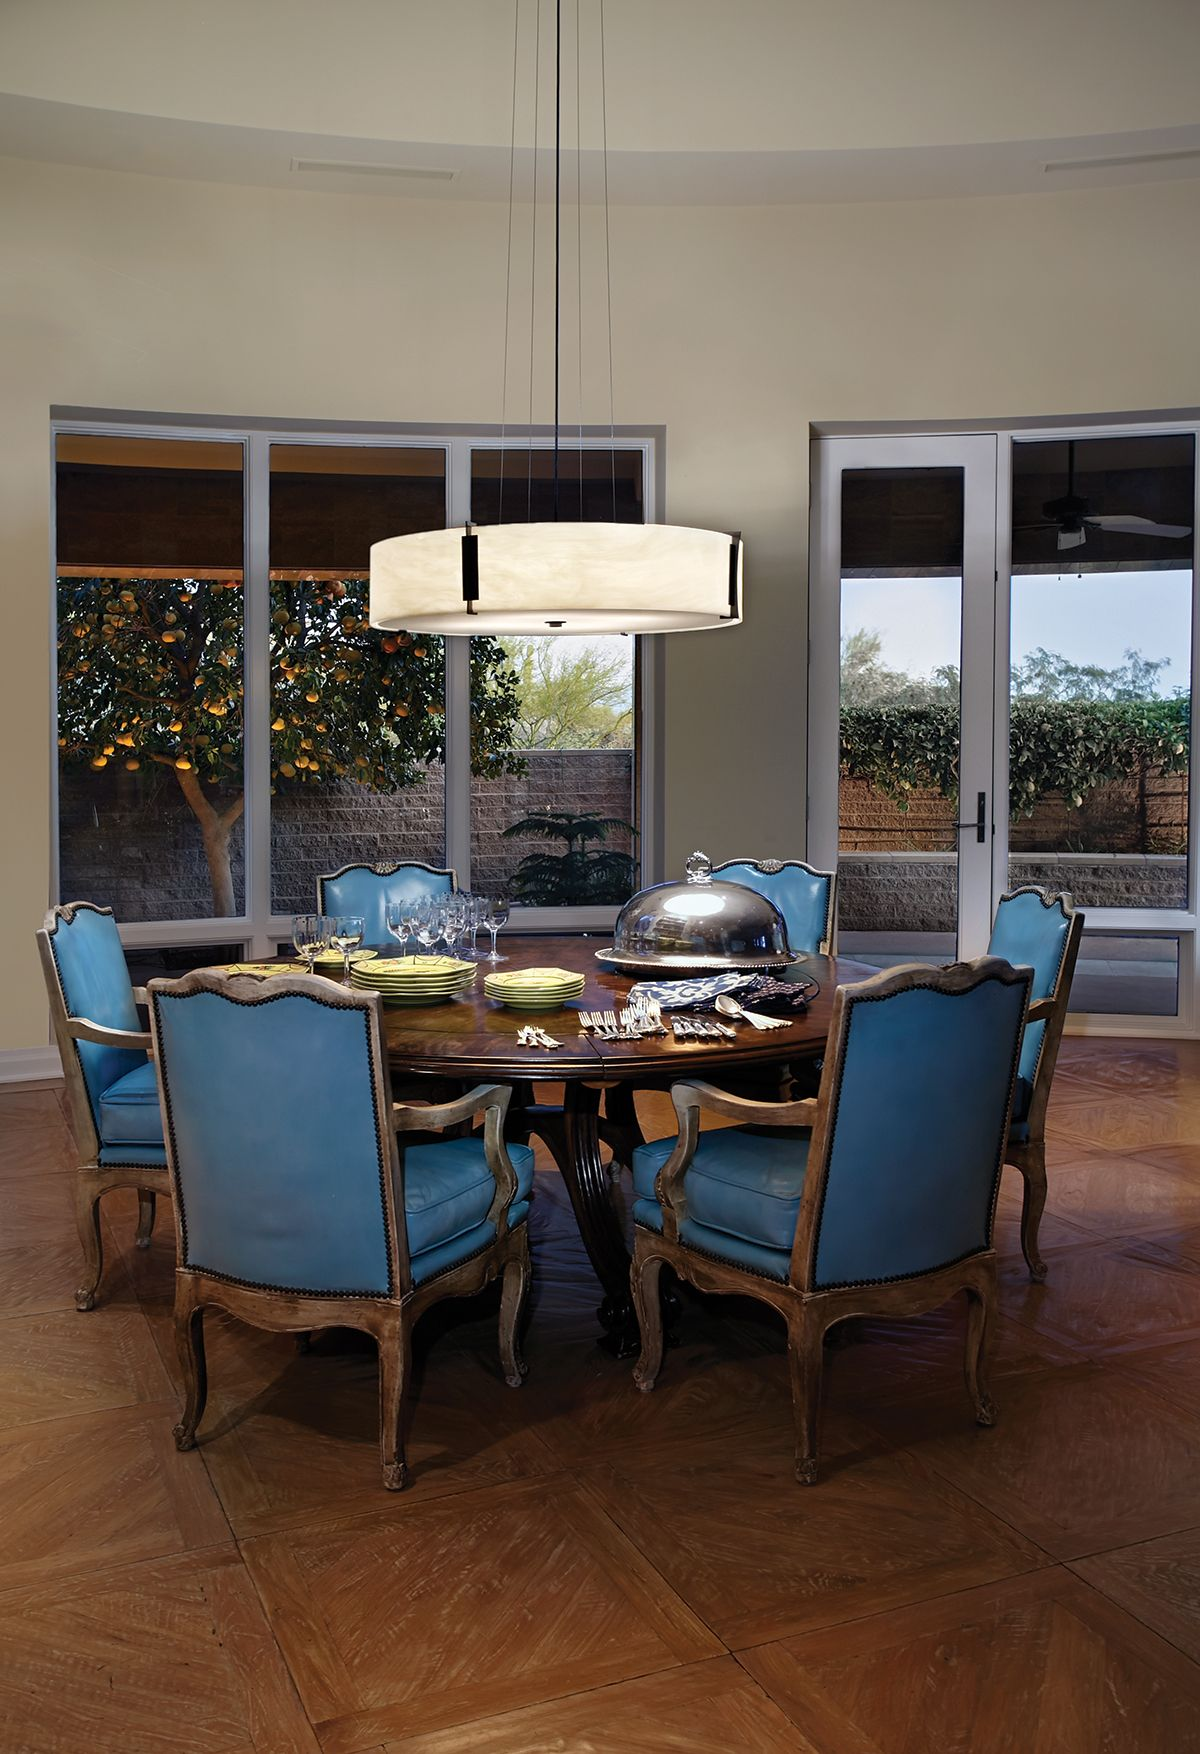 Hotel Room Lights: Private Installation Tucson Arizona By Ultralights